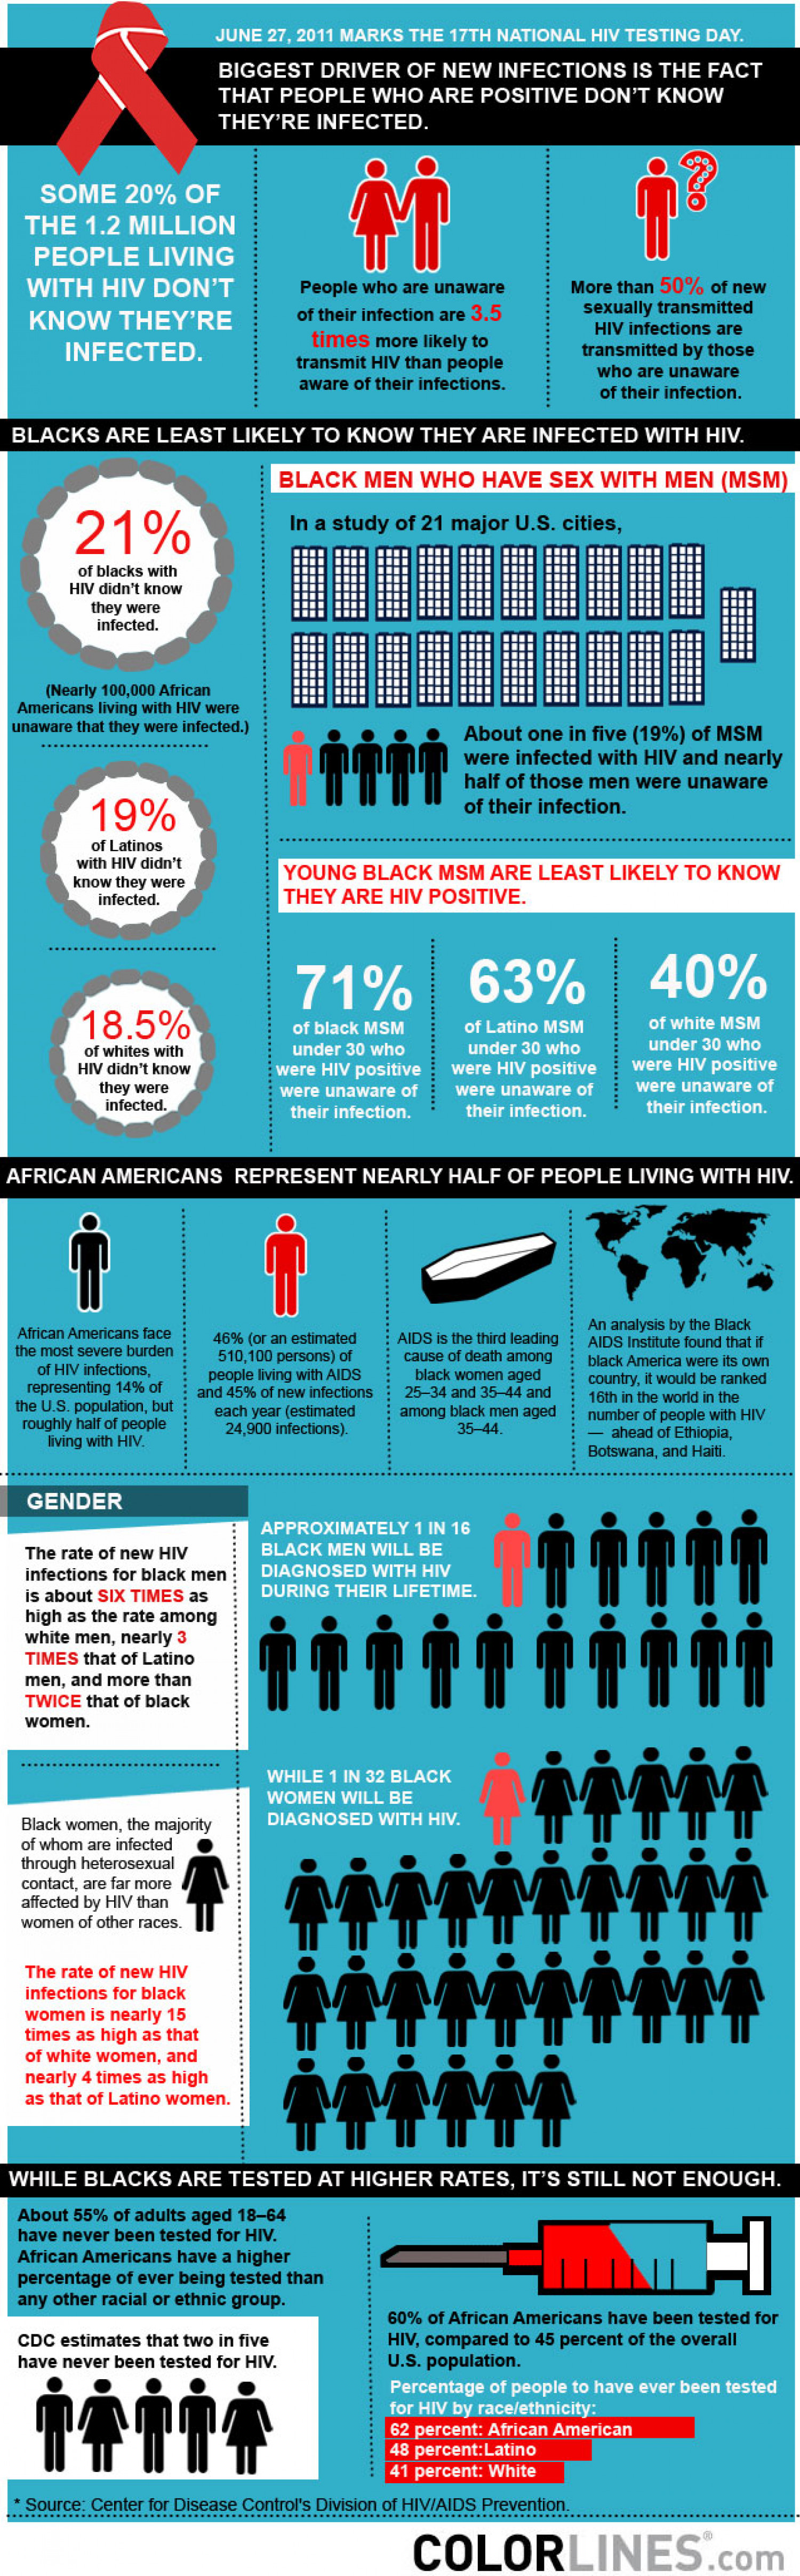 Why Is HIV Still Going? Infographic